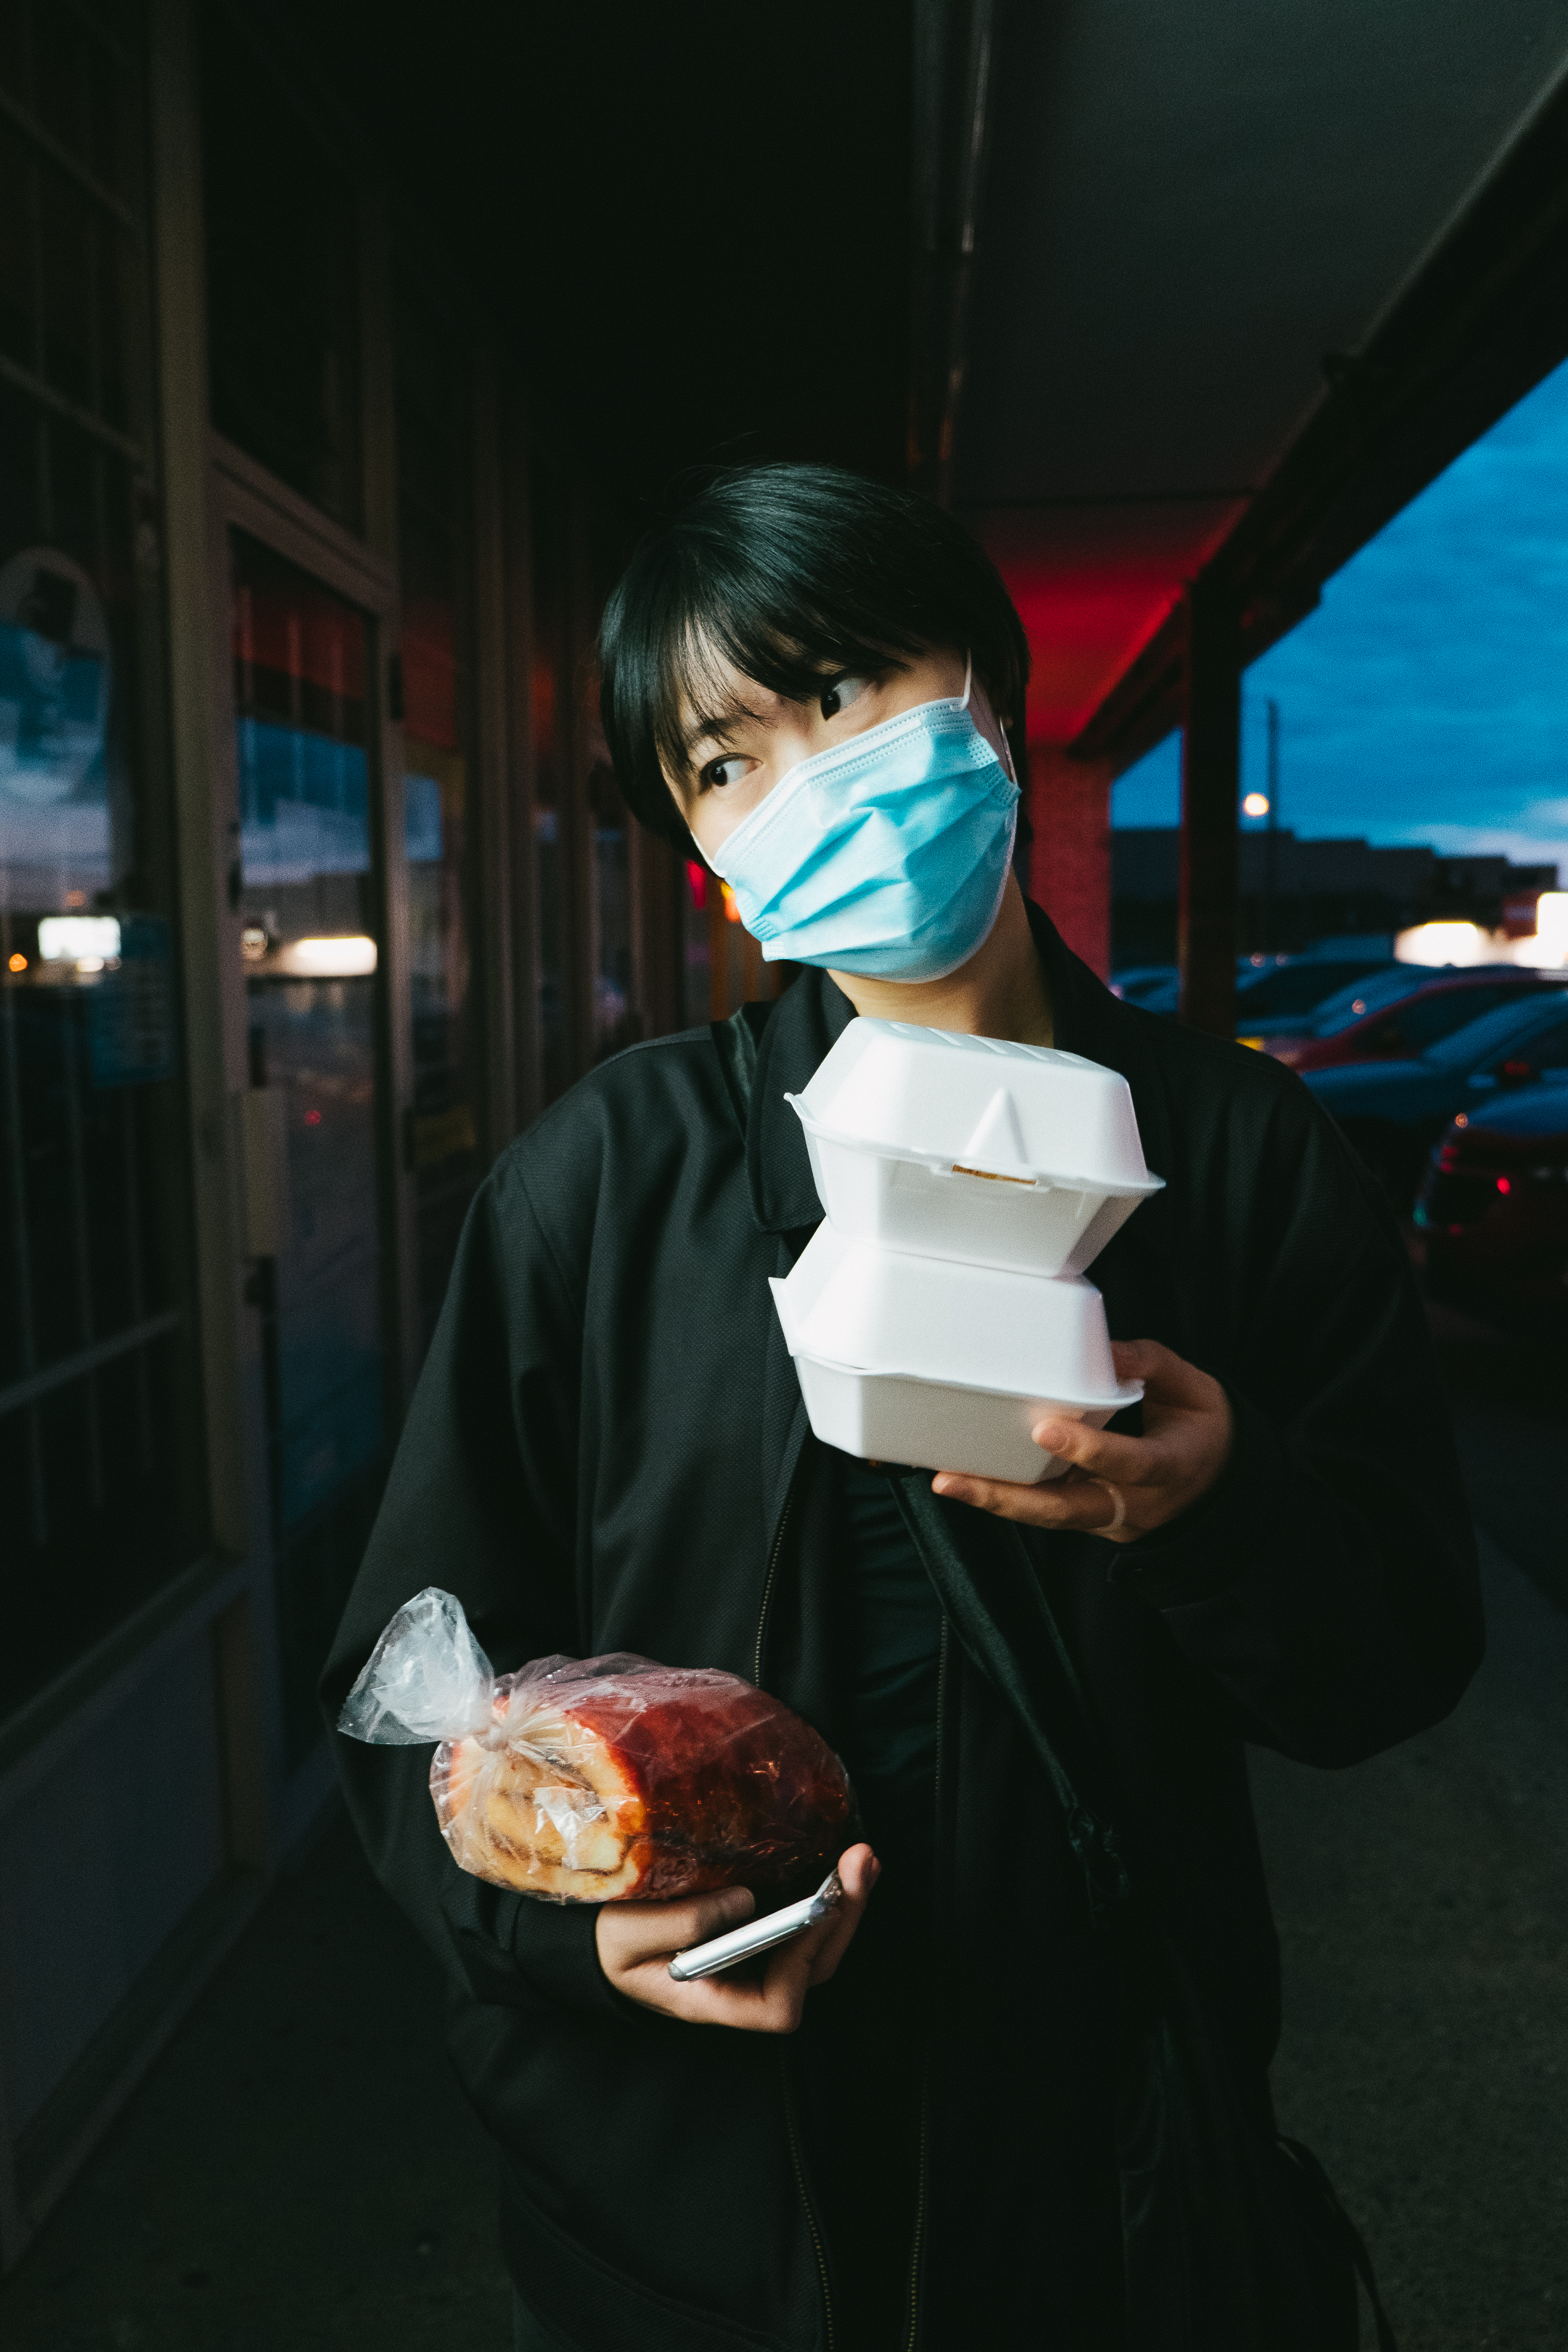 A girl wearing a mask walks along shop fronts at night carrying takeaway containers, a guava roll and her phone